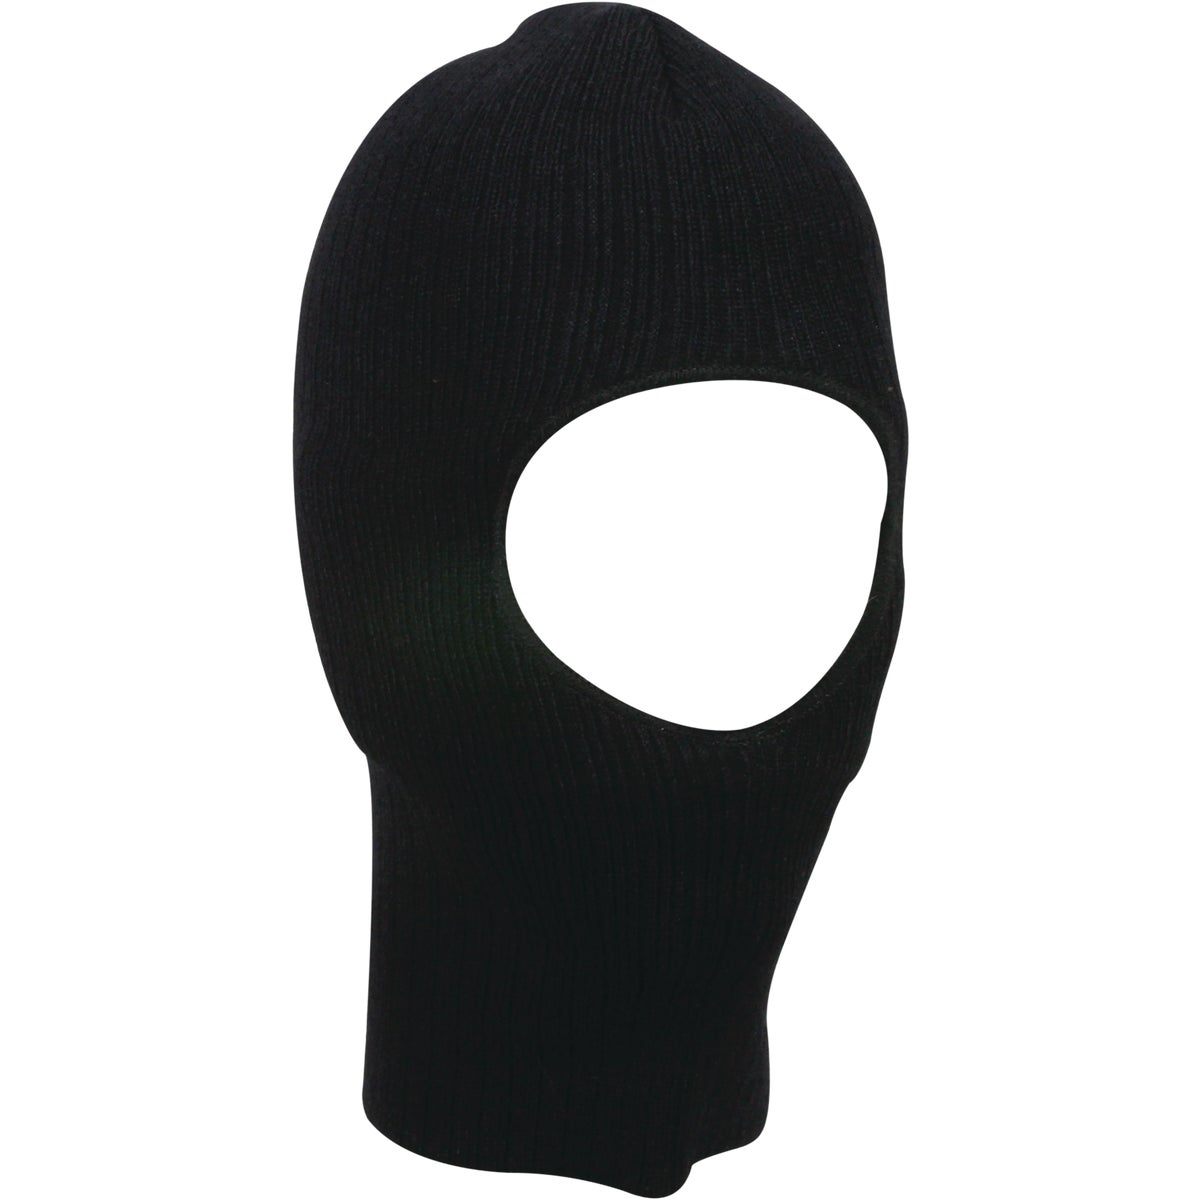 BLACK THERMAX FACEMASK - F4065-052 by Wigwam Mills, Inc